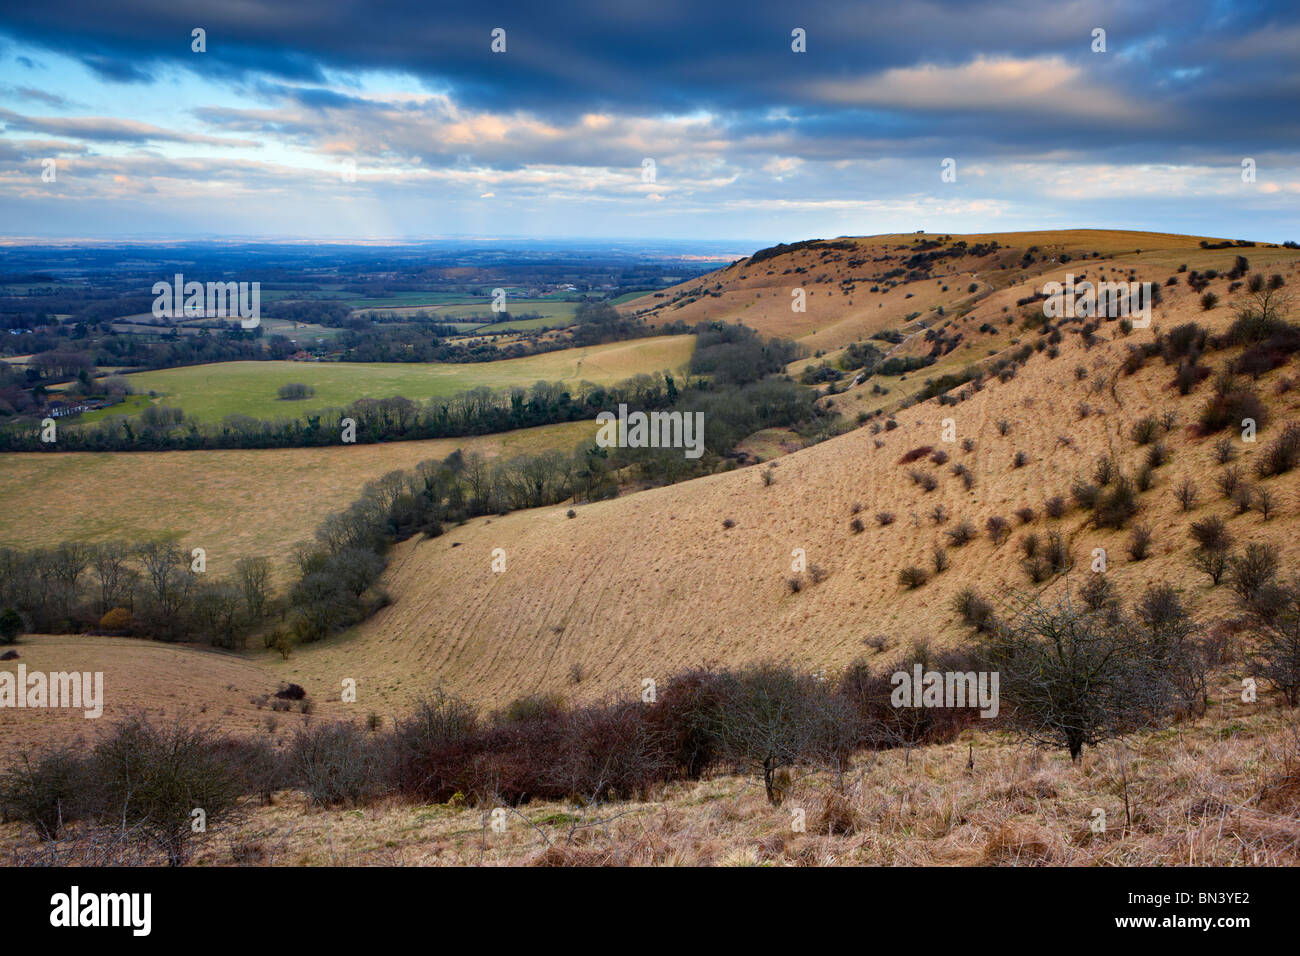 The undulating hillside of the South Downs National Park looking eastward from Ditchling Beacon along the South - Stock Image